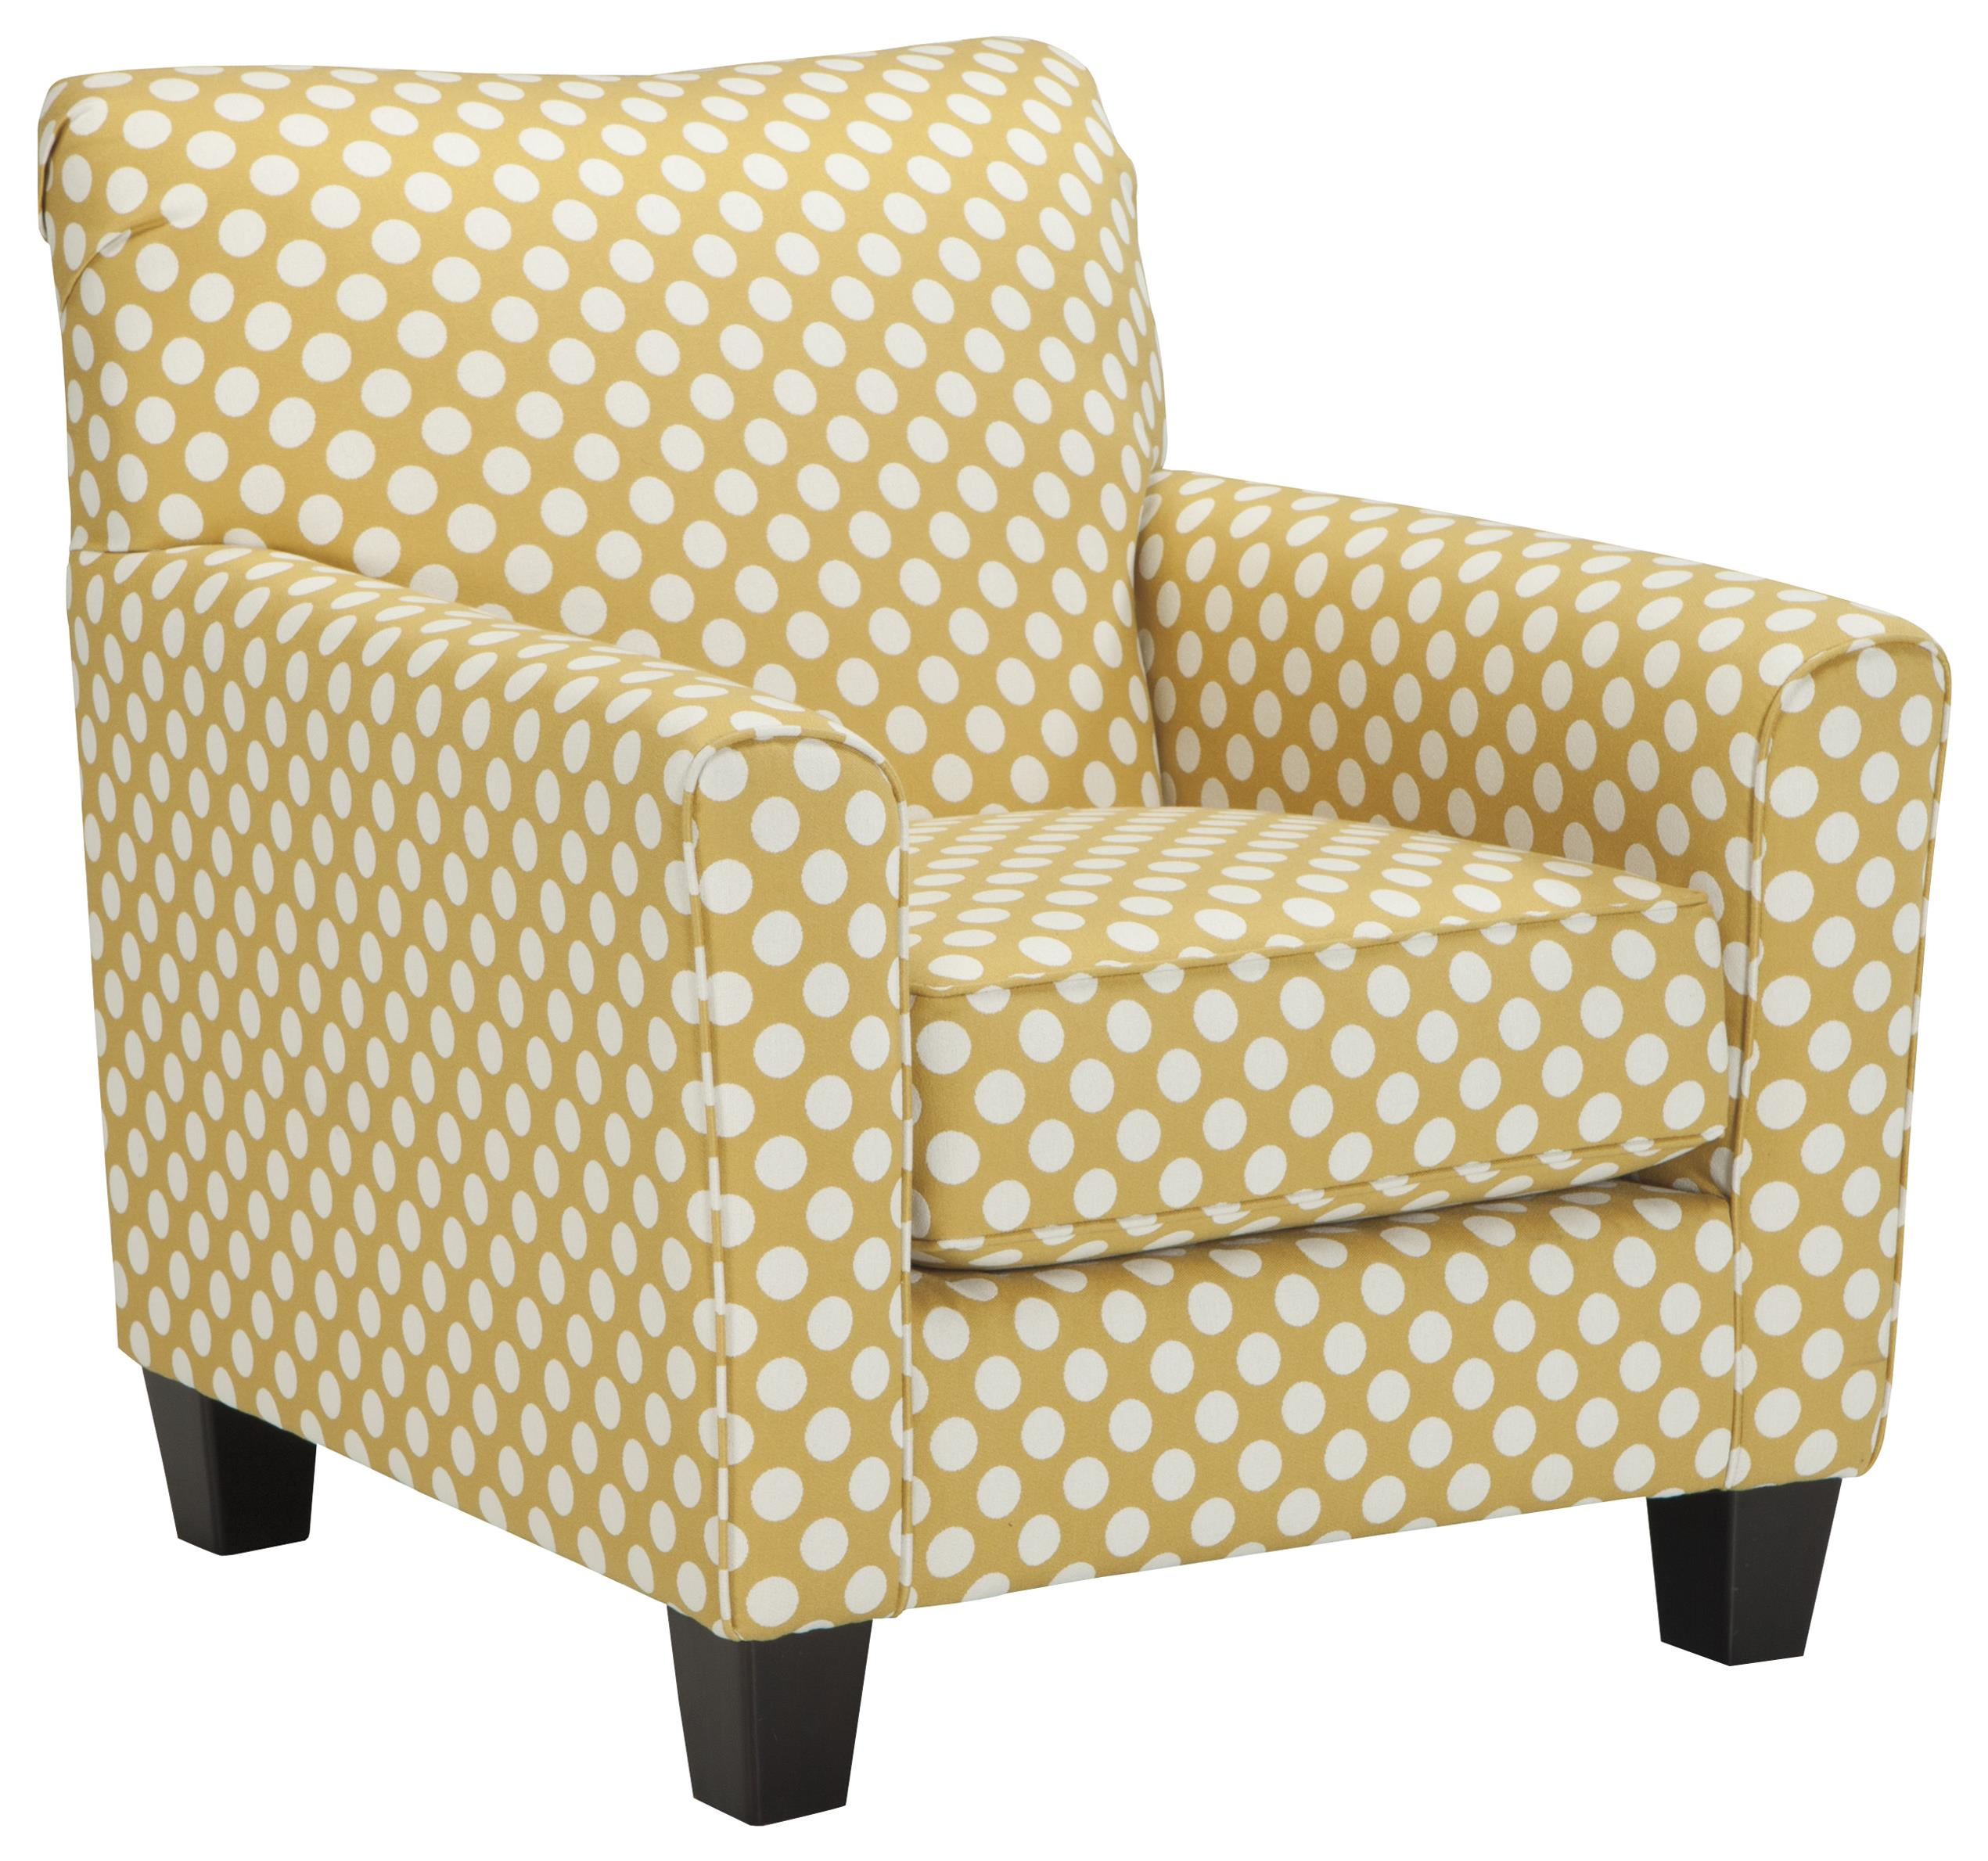 polka dot rocking chair cushions wedding covers lace benchcraft brindon accent in yellow fabric with